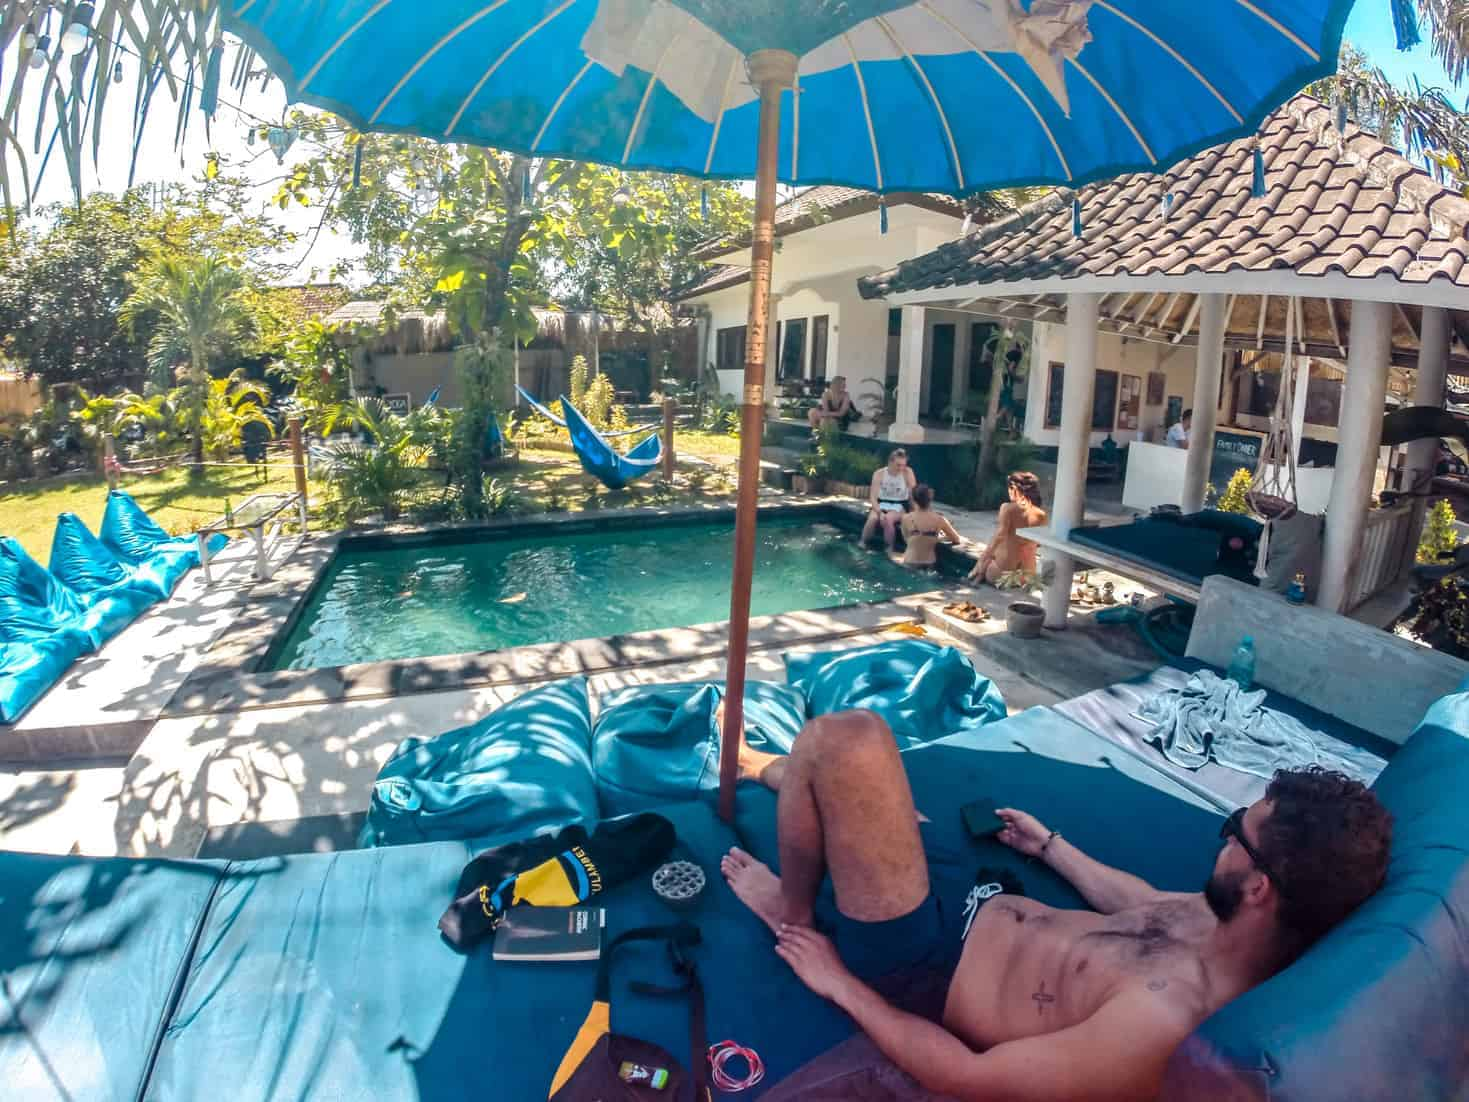 The enticing features of Hideout Hostel that backpackers should not miss